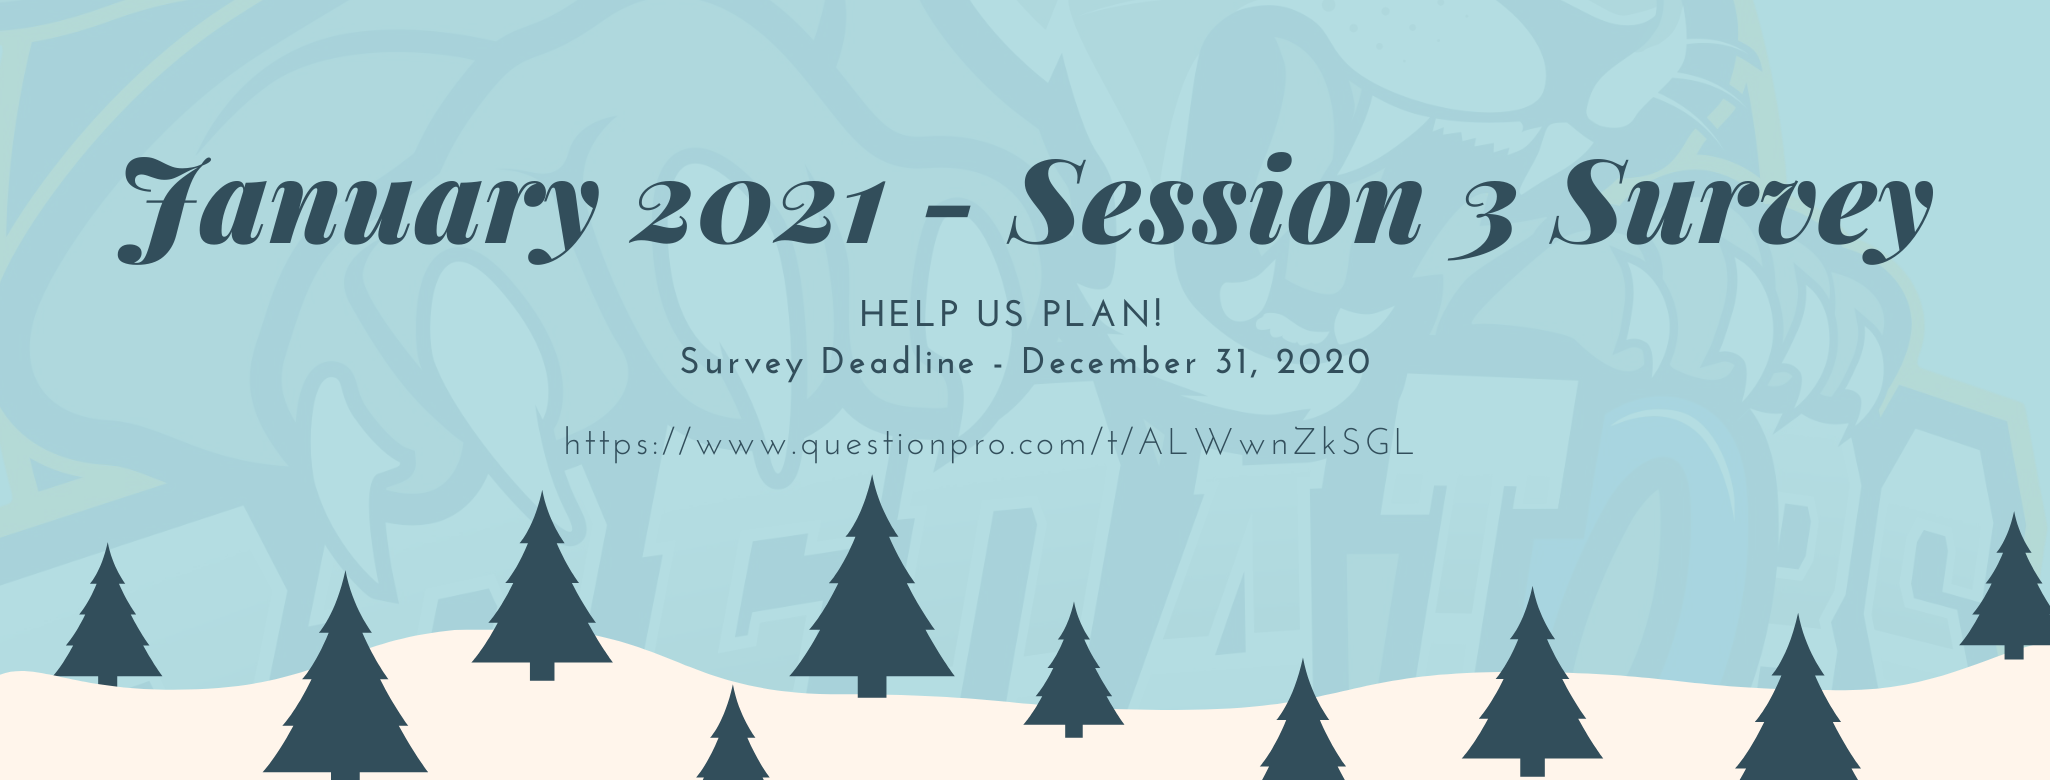 GRA January 2021 Session 3 Survey!